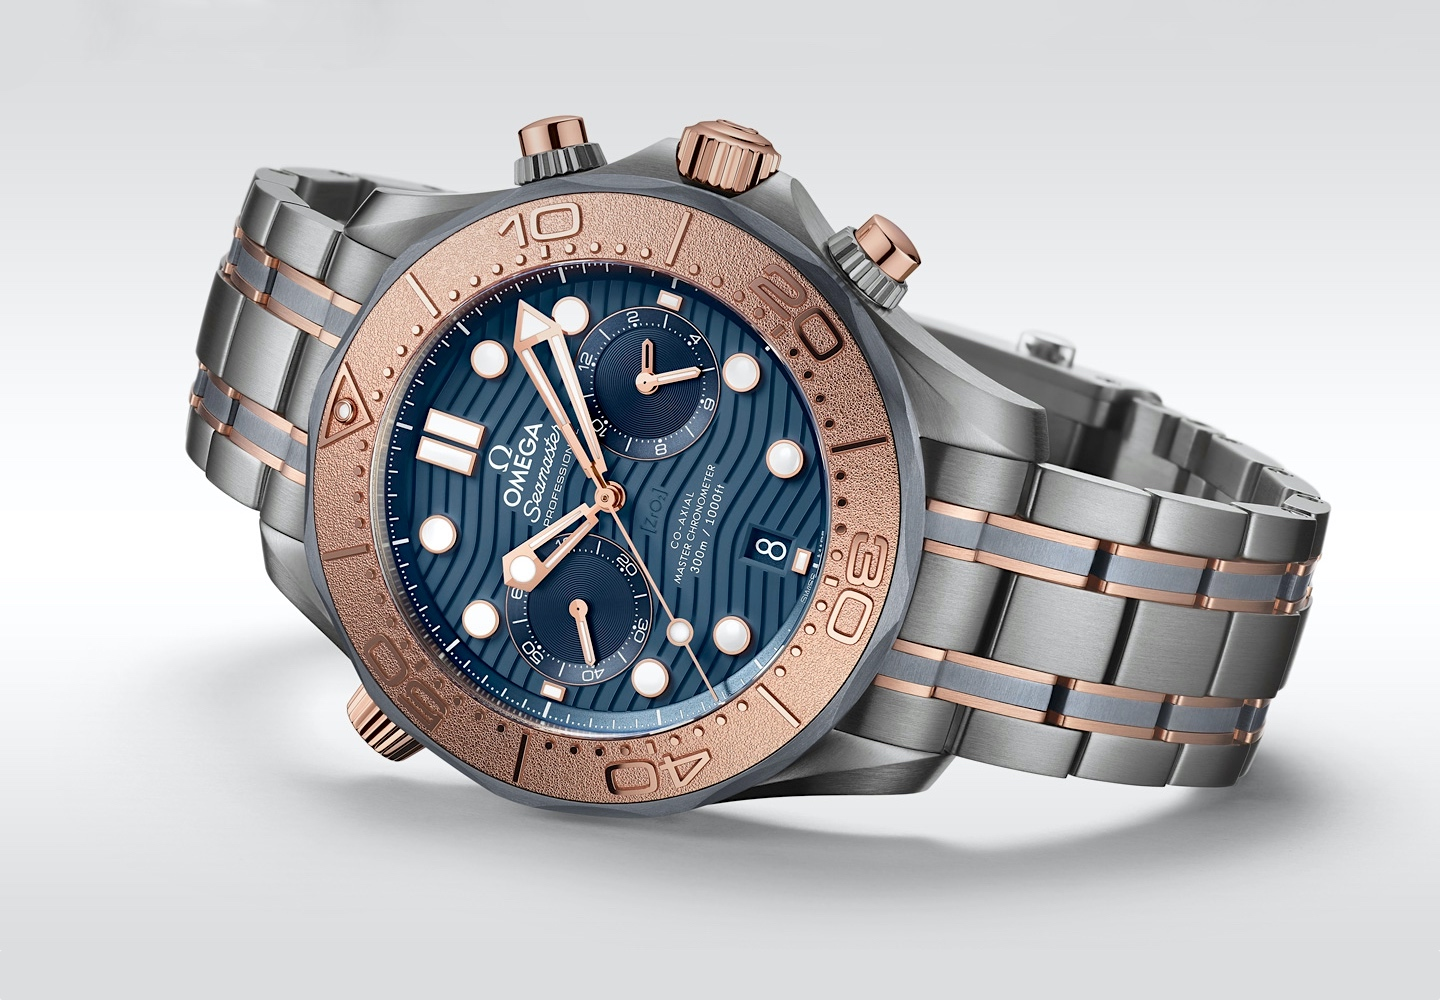 Omega Seamaster Diver 300M Chronograph - front